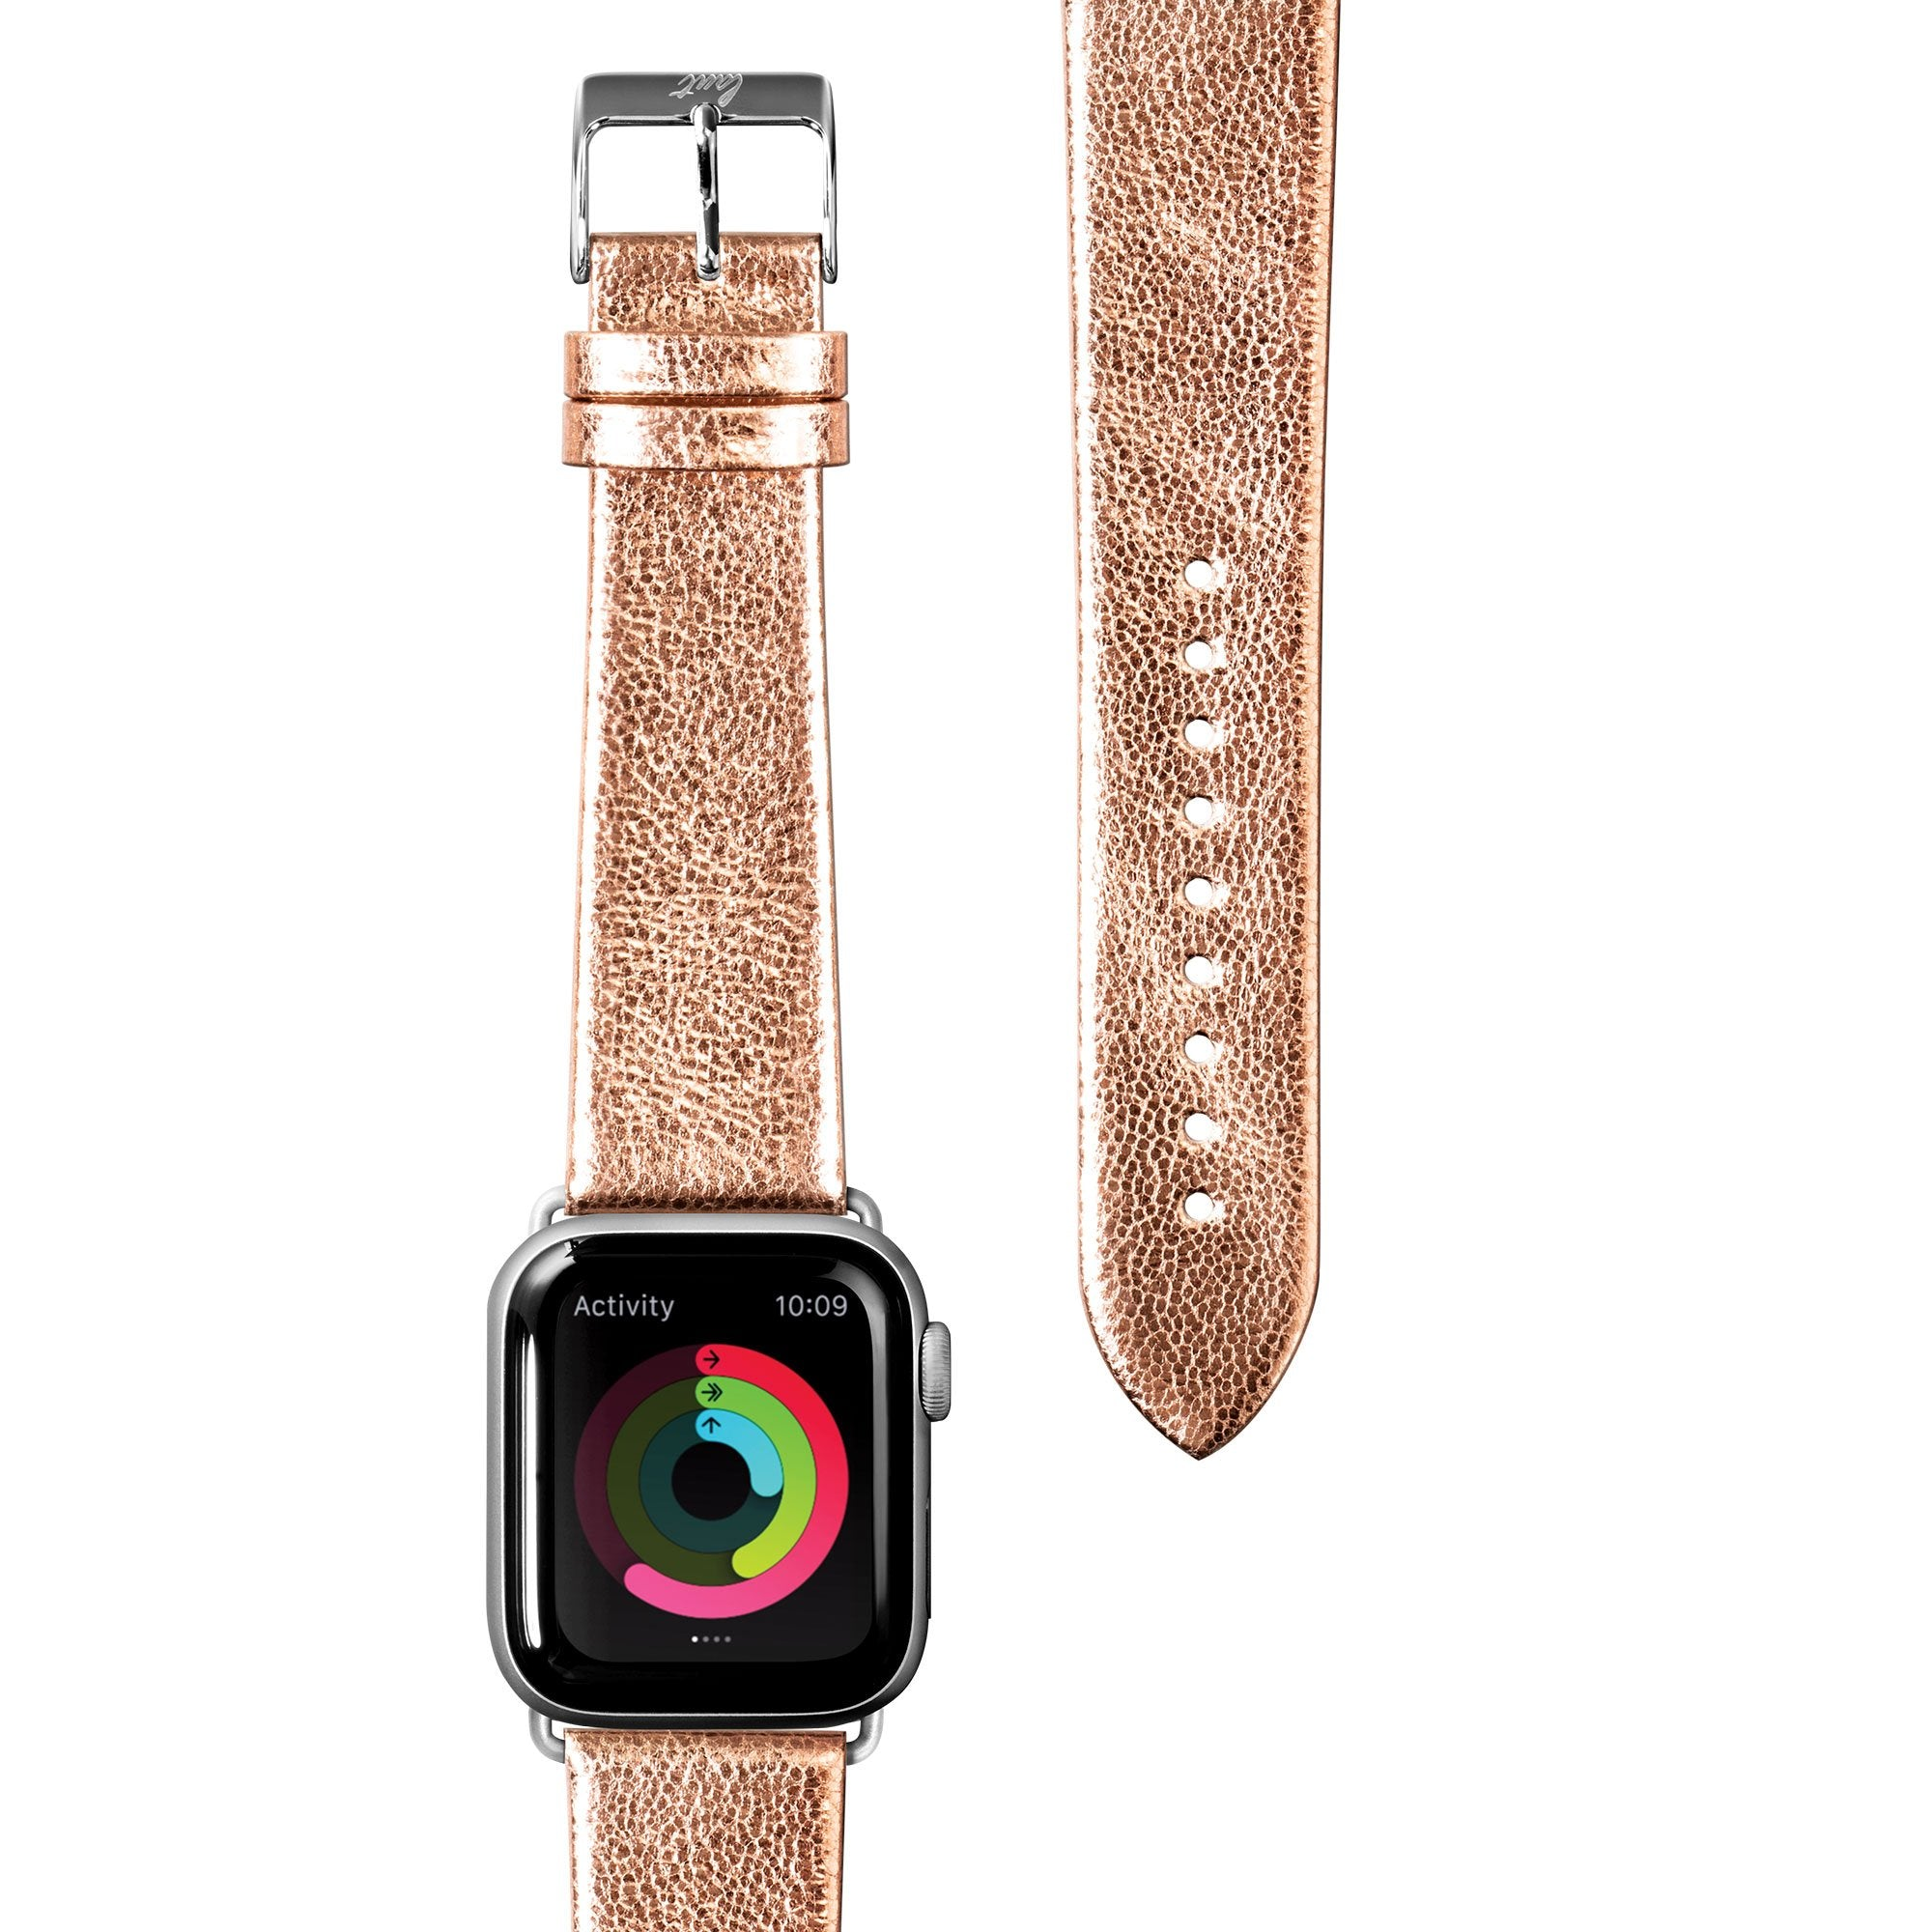 METALLIC Leather Watch Strap for Apple Watch Series 1/2/3/4/5 - LAUT Japan